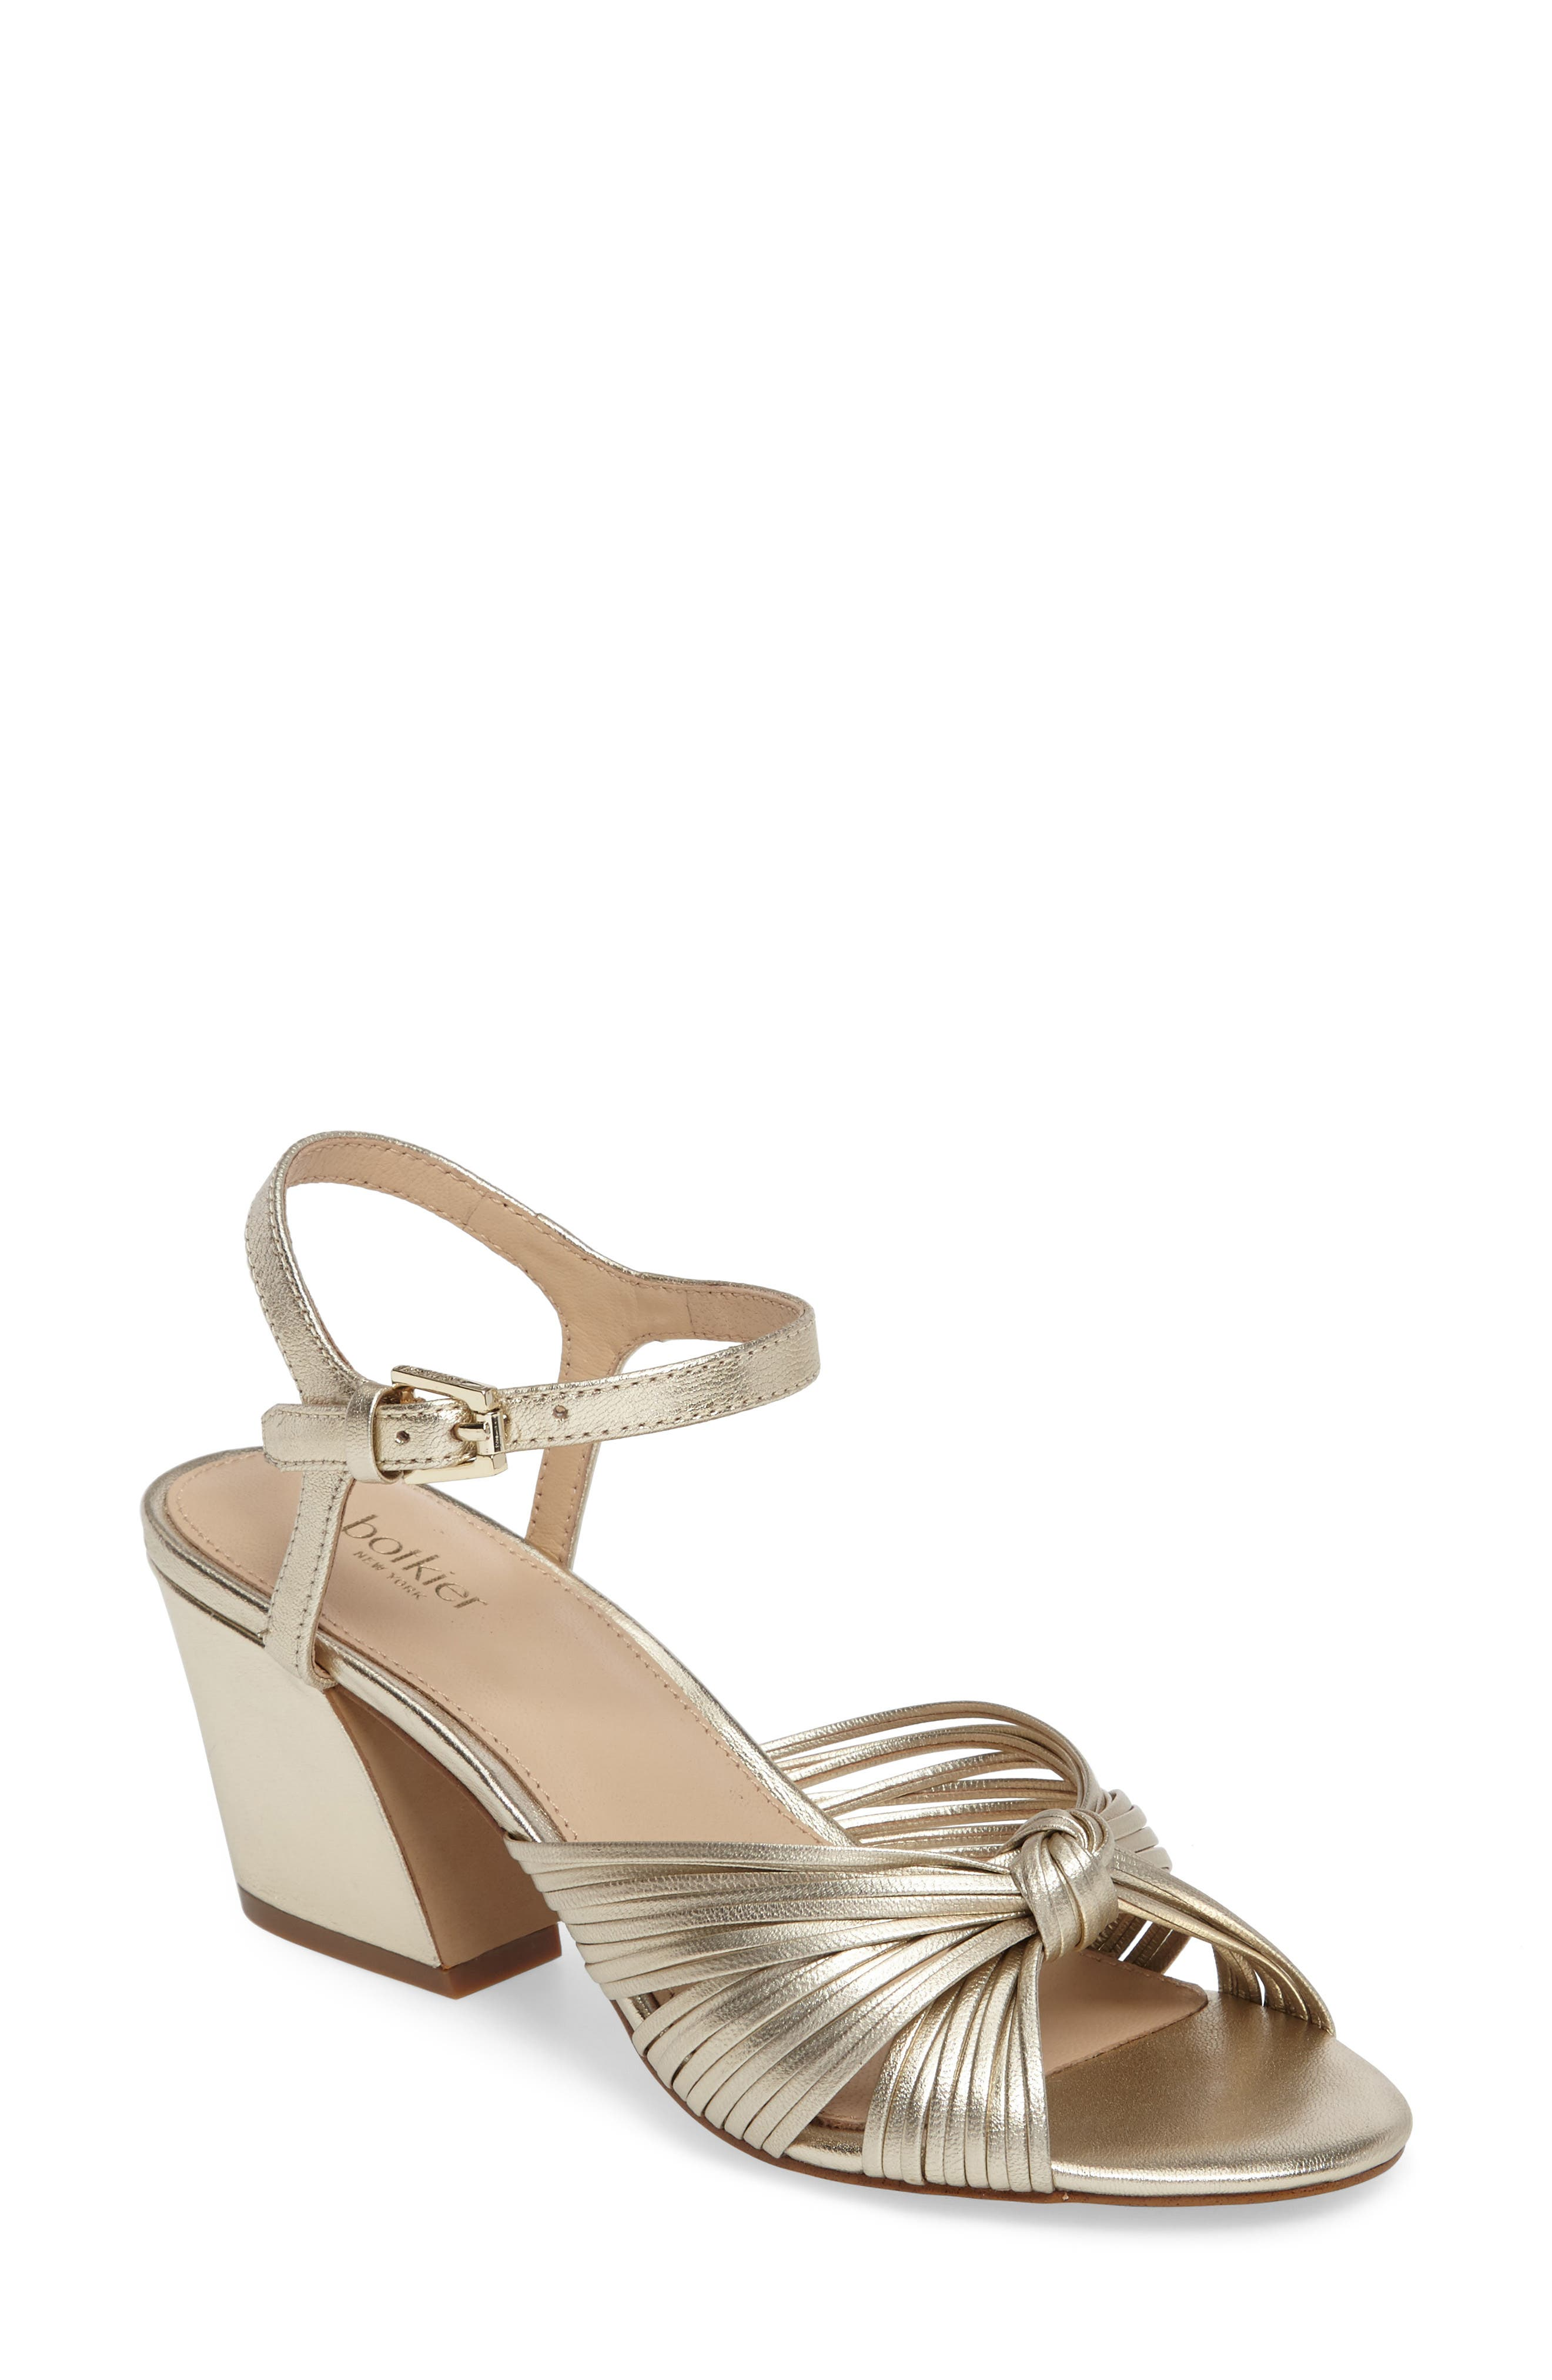 Patsy Block Heel Sandal,                         Main,                         color, 100